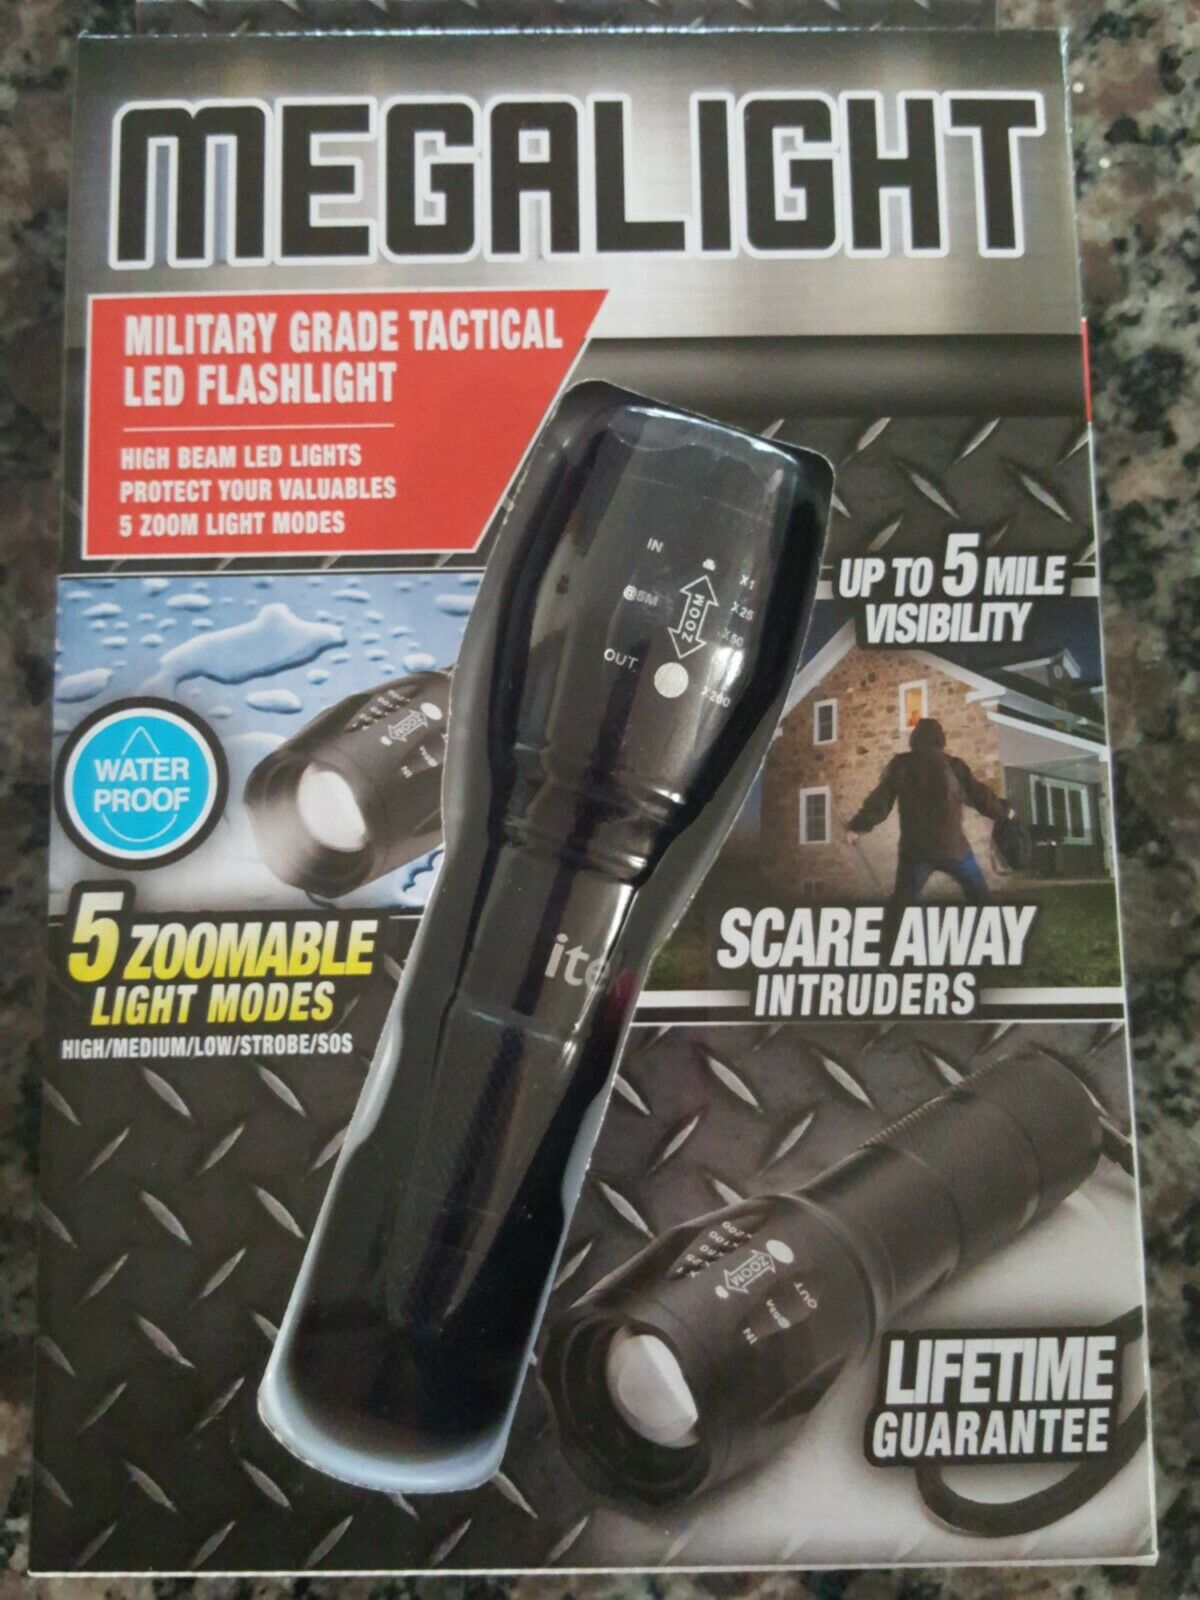 Megalight Military grade LED flashlight 5 zoomable light modes up  to 5 miles vis  outlet on sale